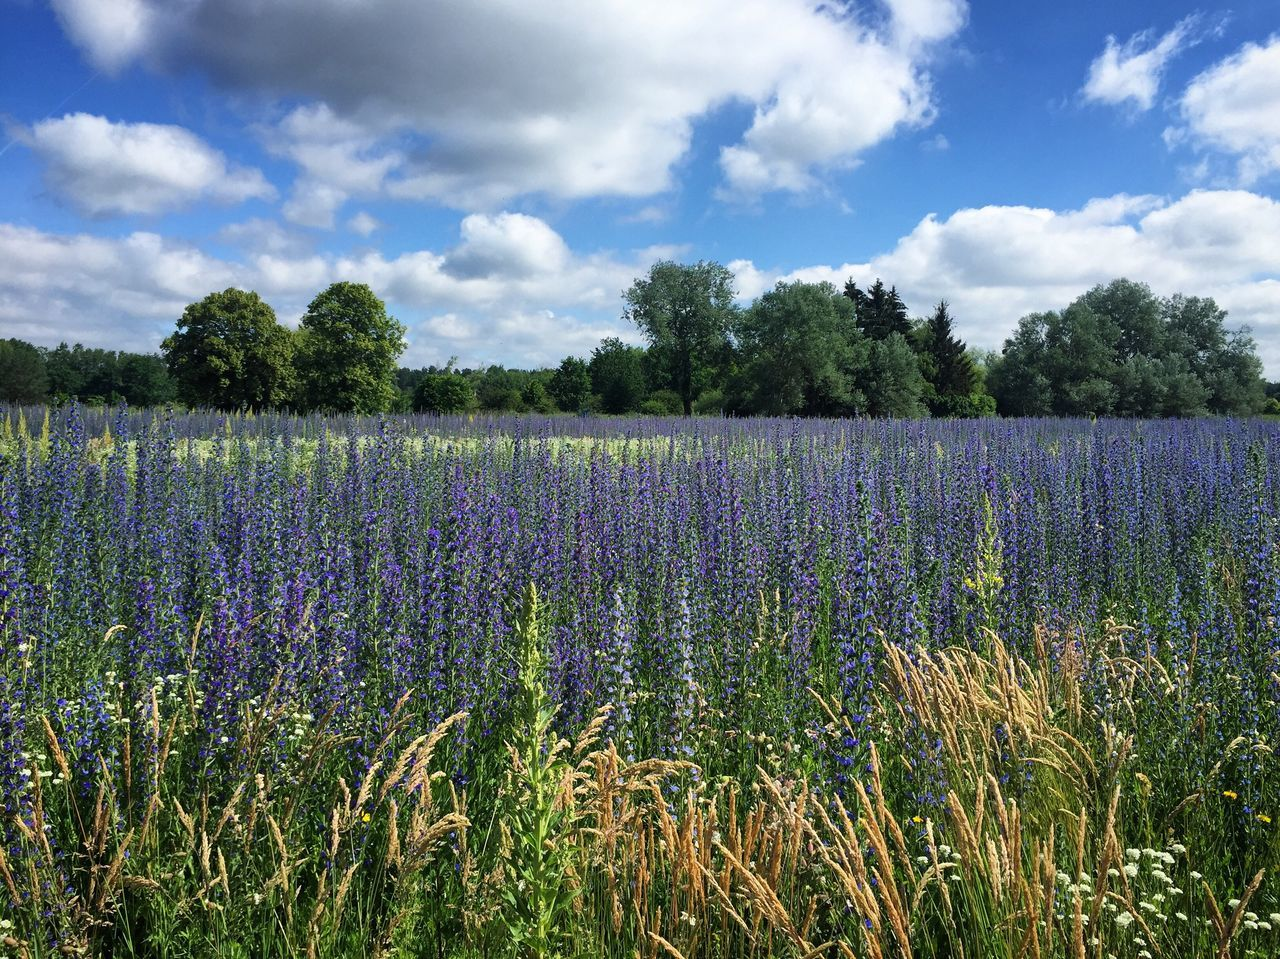 Blue flowers in Brandenburg Growth Purple Nature Cloud - Sky Field Tranquility Beauty In Nature Lavender Sky Landscape Scenics Day Plant Tree Tranquil Scene No People Agriculture Outdoors Rural Scene Flower Brandenburg Flowers Blue